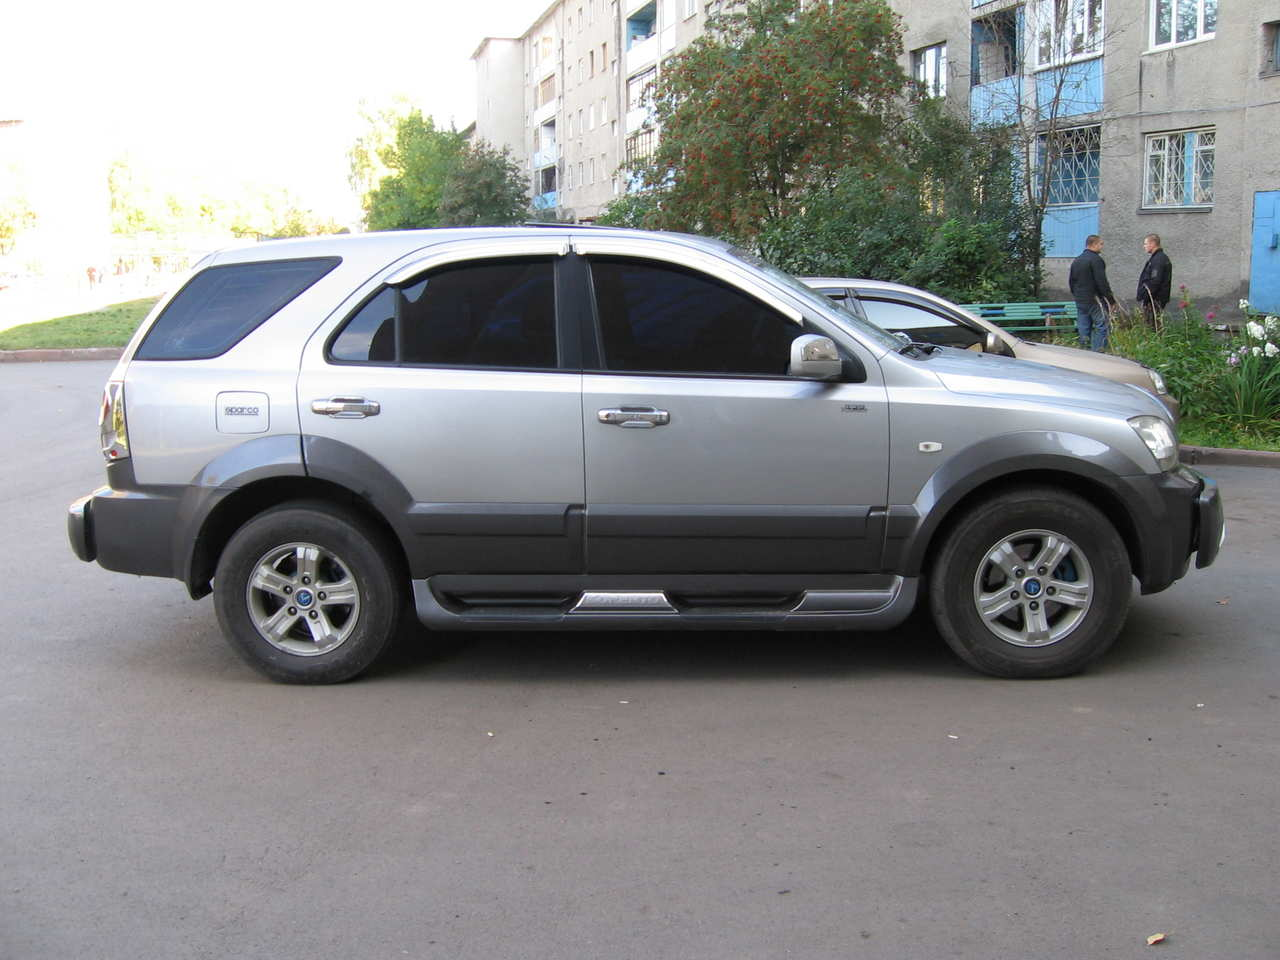 used 2002 kia sorento pictures diesel manual for sale. Black Bedroom Furniture Sets. Home Design Ideas